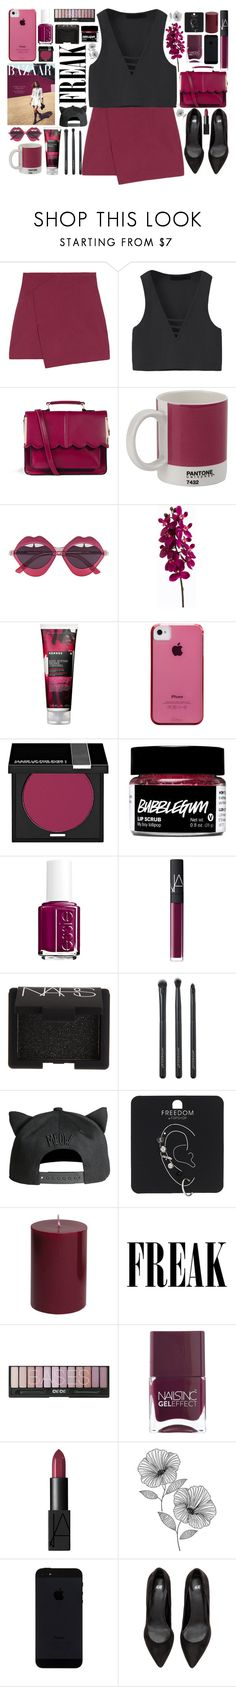 """Be a freak like me, too"" by hannah-gw-martin ❤ liked on Polyvore featuring ASOS, W2 Products, House of Holland, Korres, Case-Mate, MAKE UP FOR EVER, Essie, NARS Cosmetics, Japonesque and H&M"